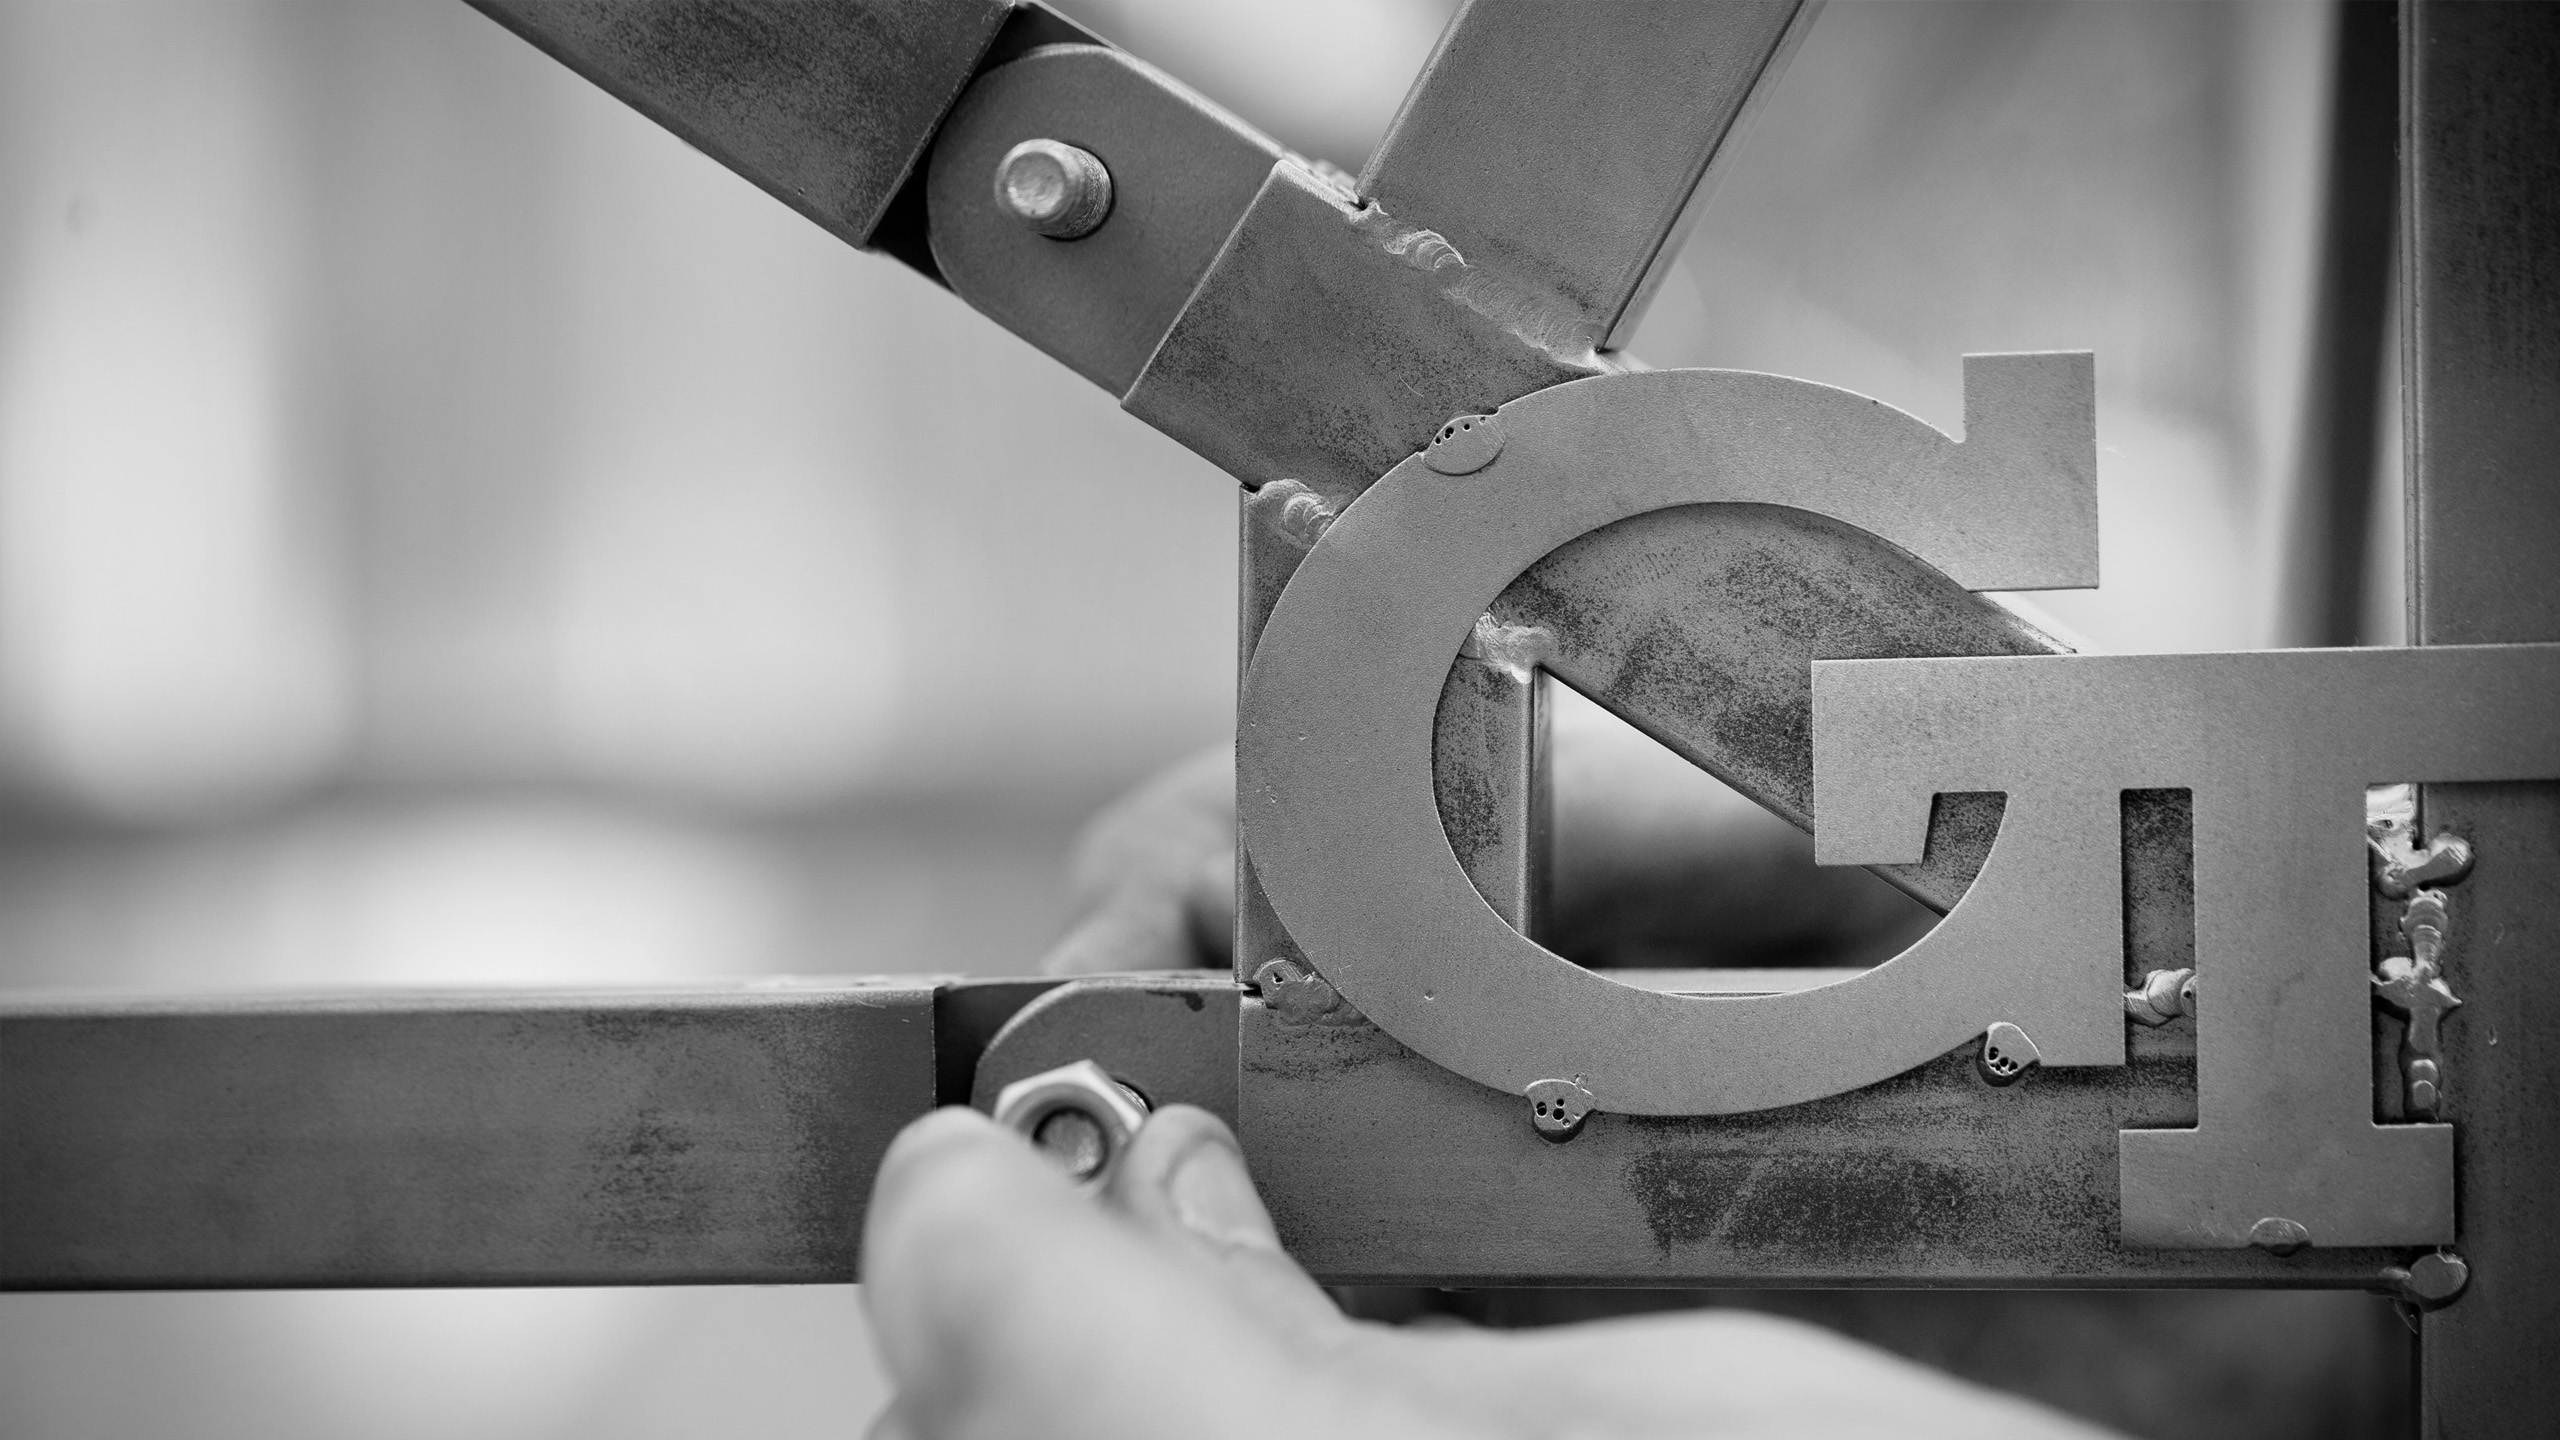 Image of Georgia Tech GT logo being designed with metalwork